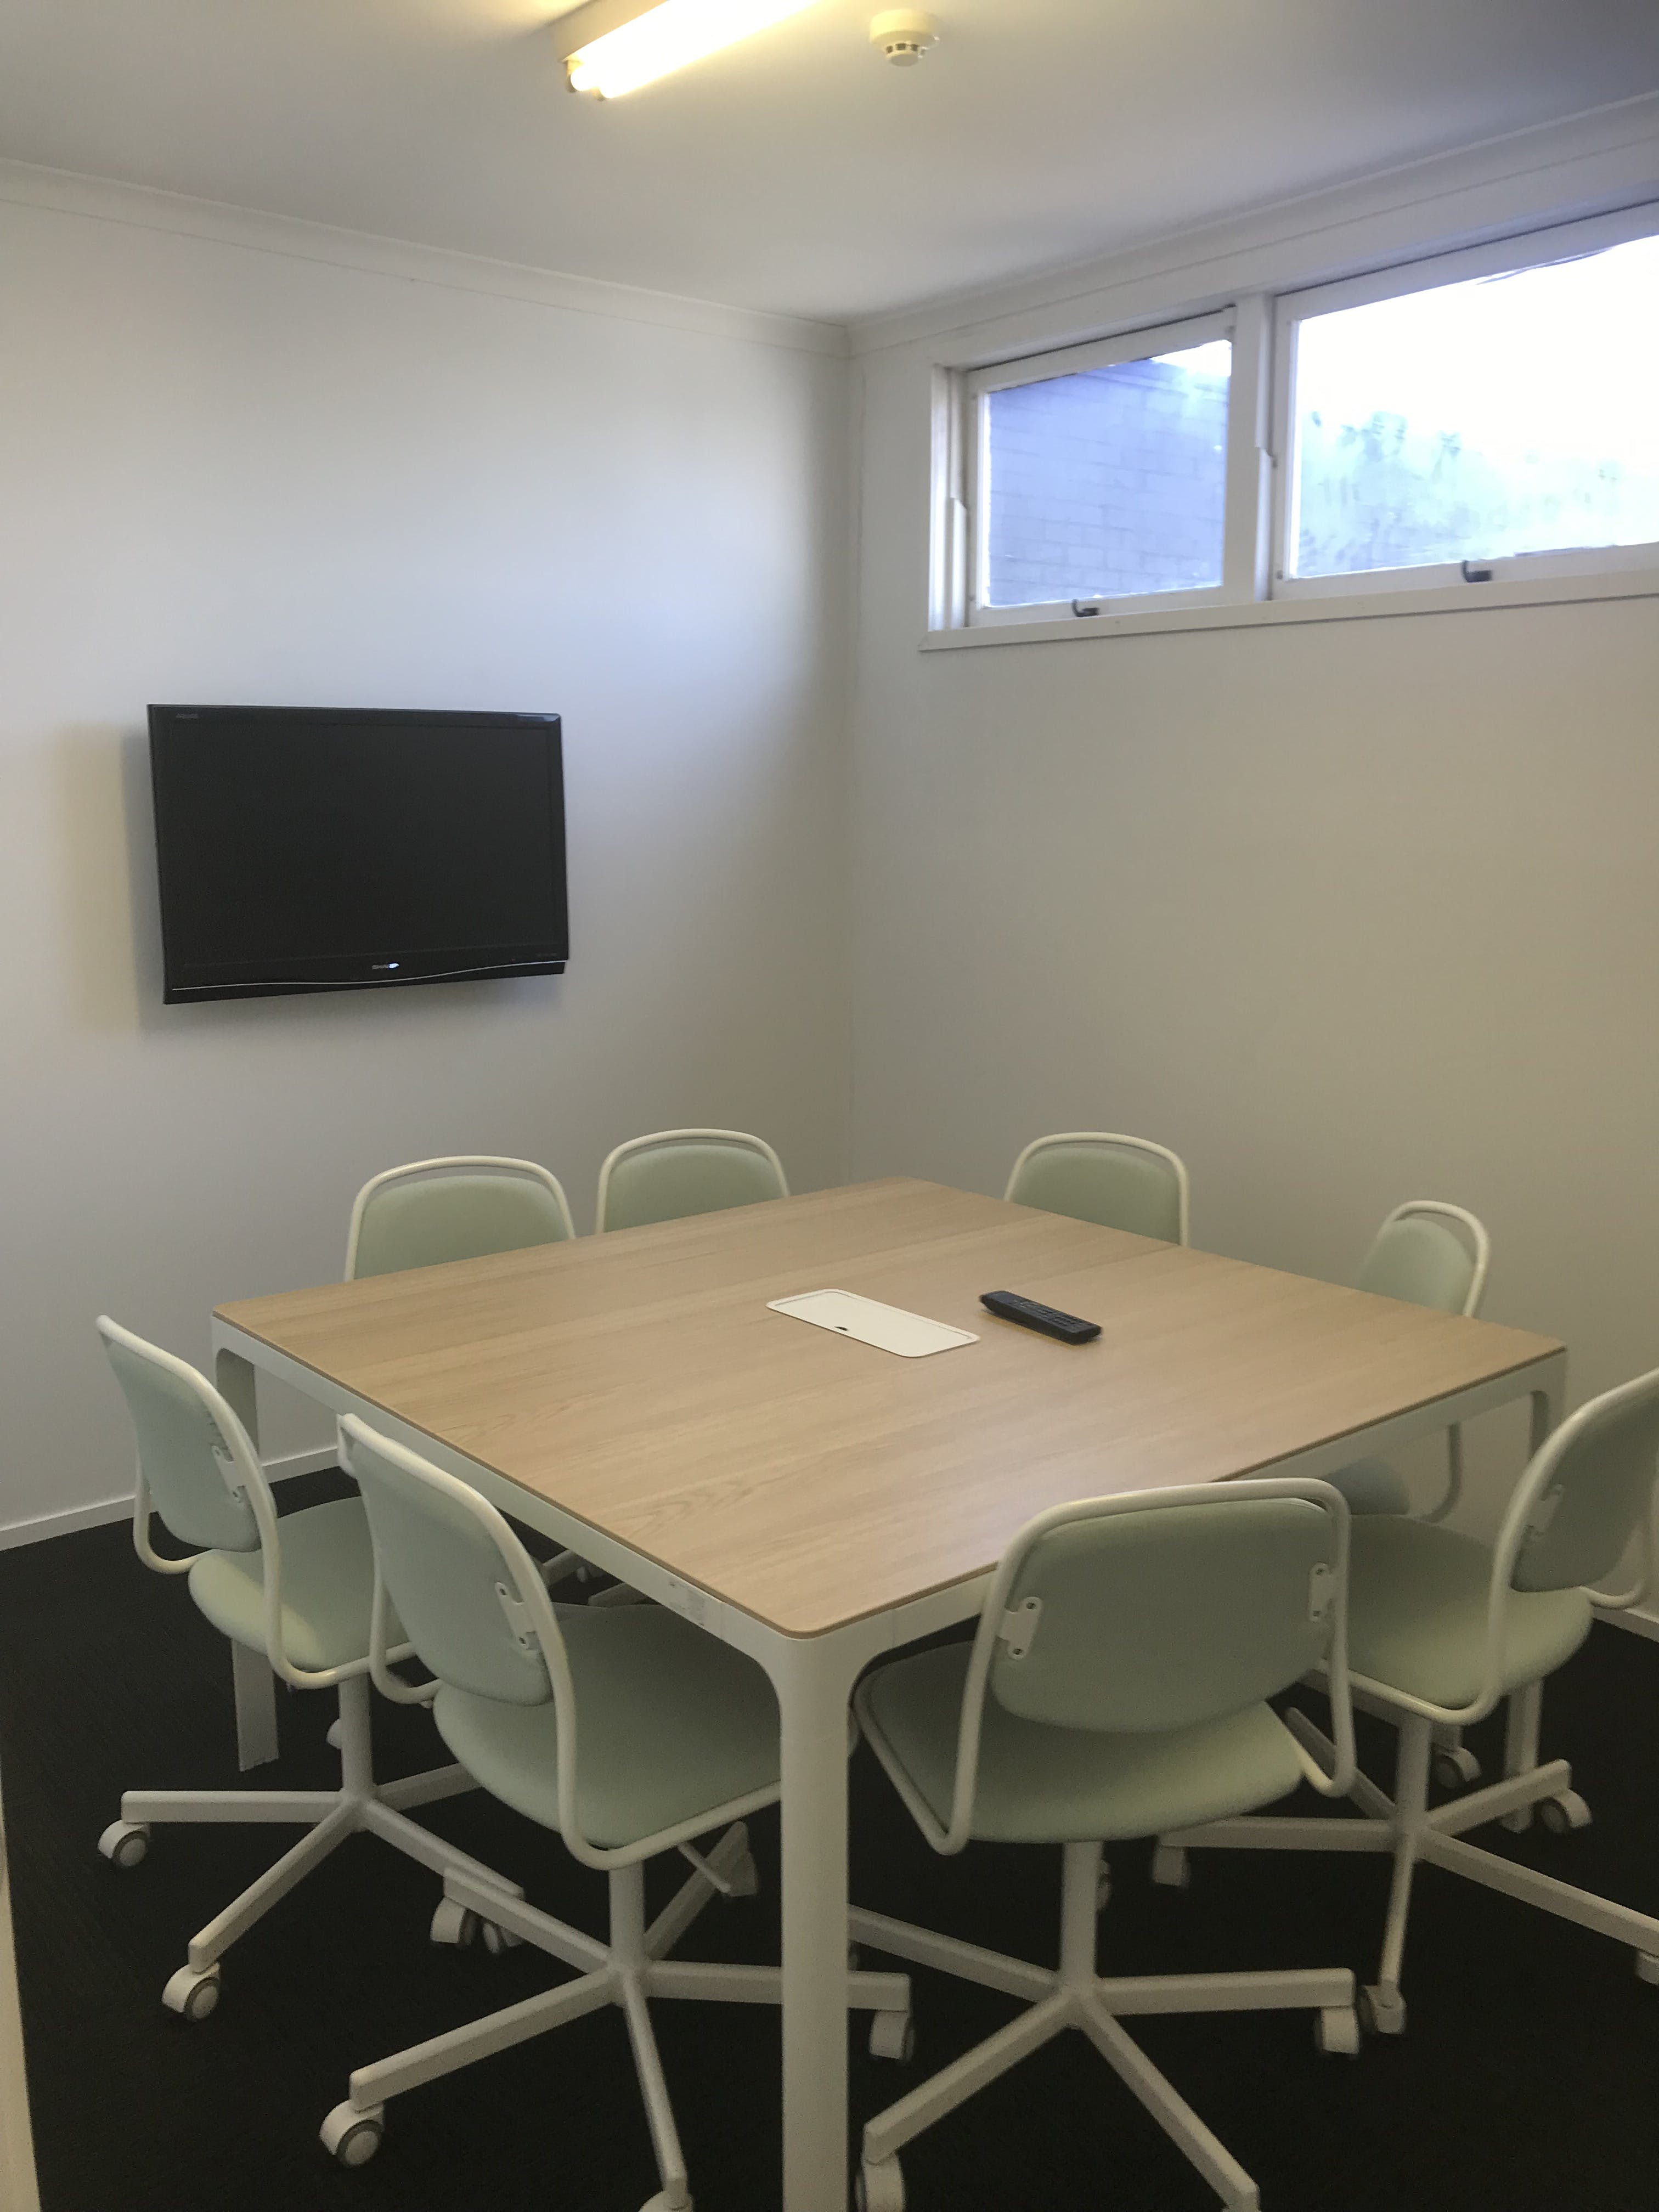 The Meeting Room, meeting room at Beacon HQ, image 1